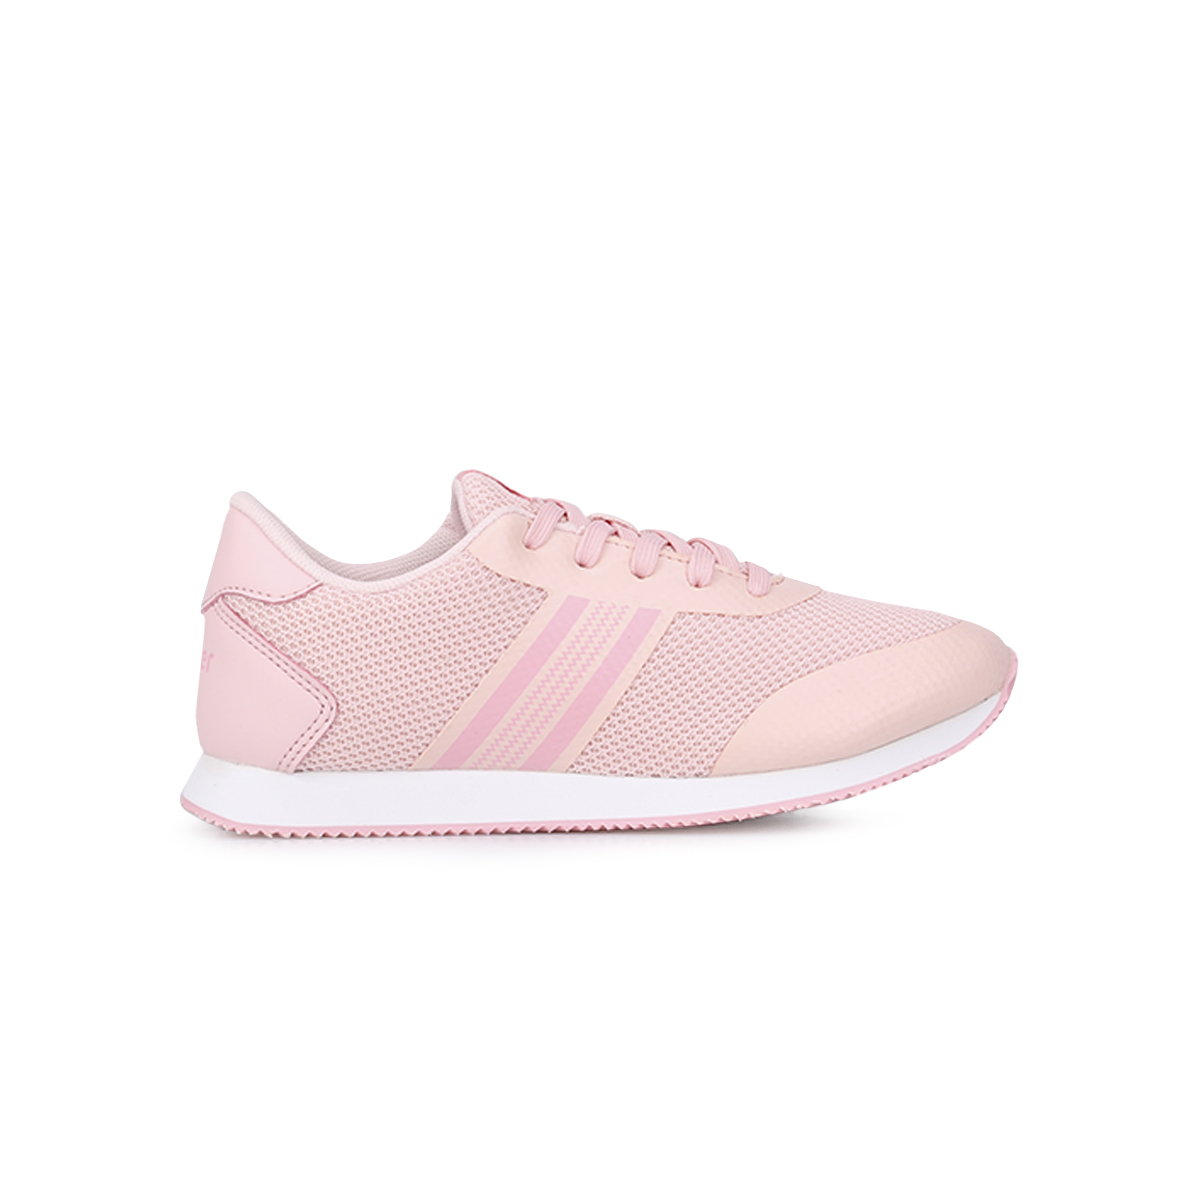 Zapatillas Topper Ambar,  image number null